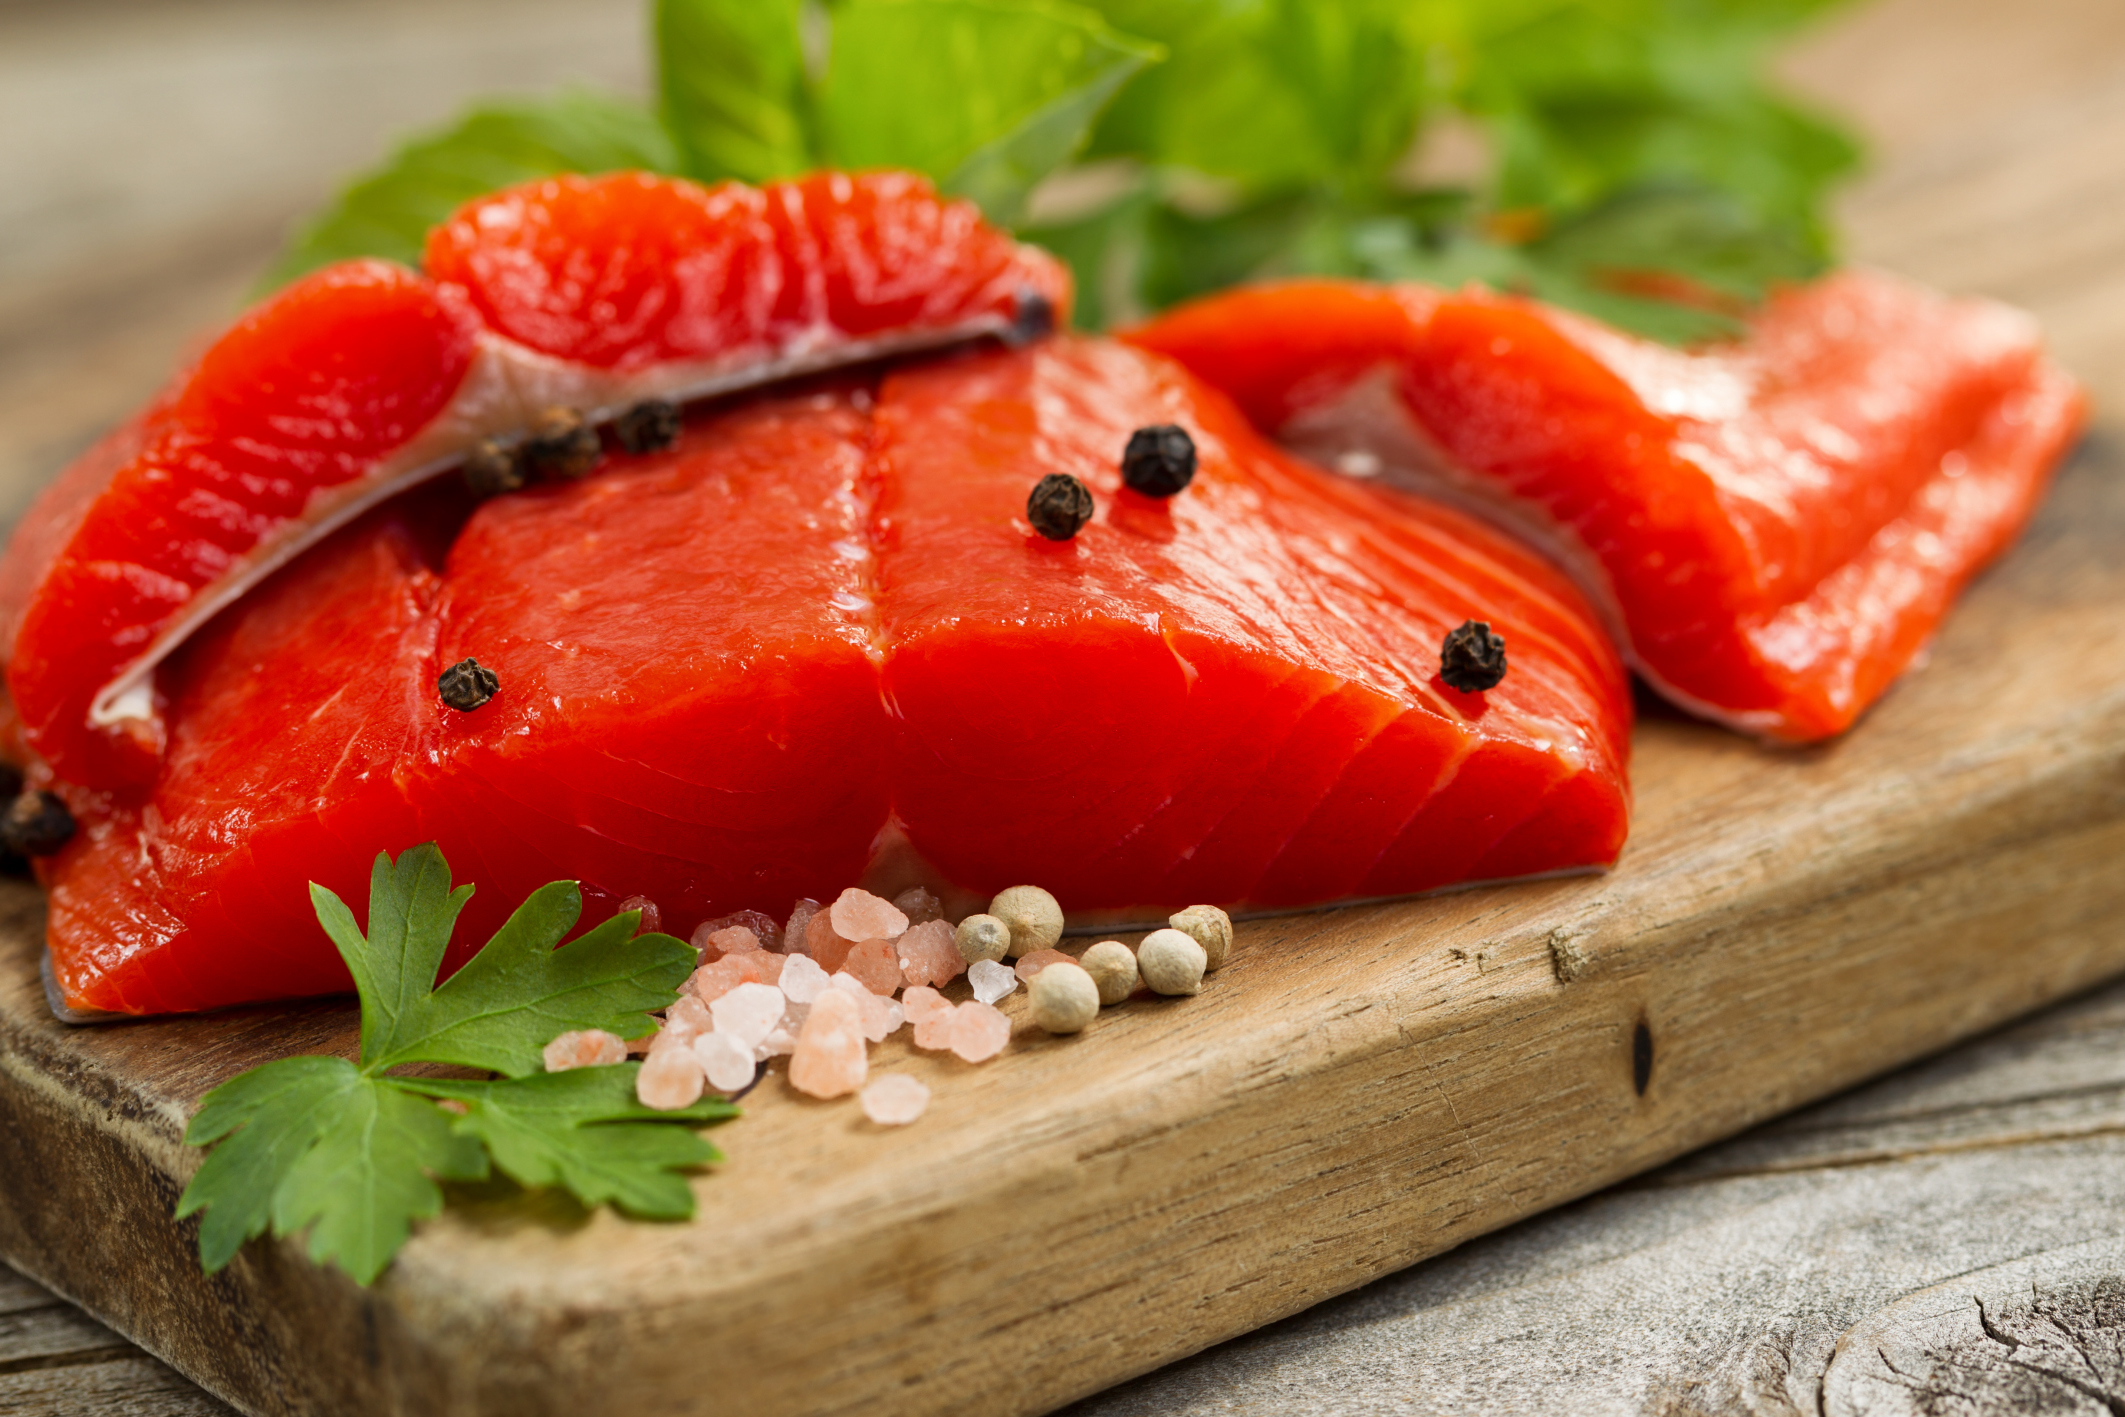 What Are the Benefits of Sockeye Salmon? | LIVESTRONG.COM